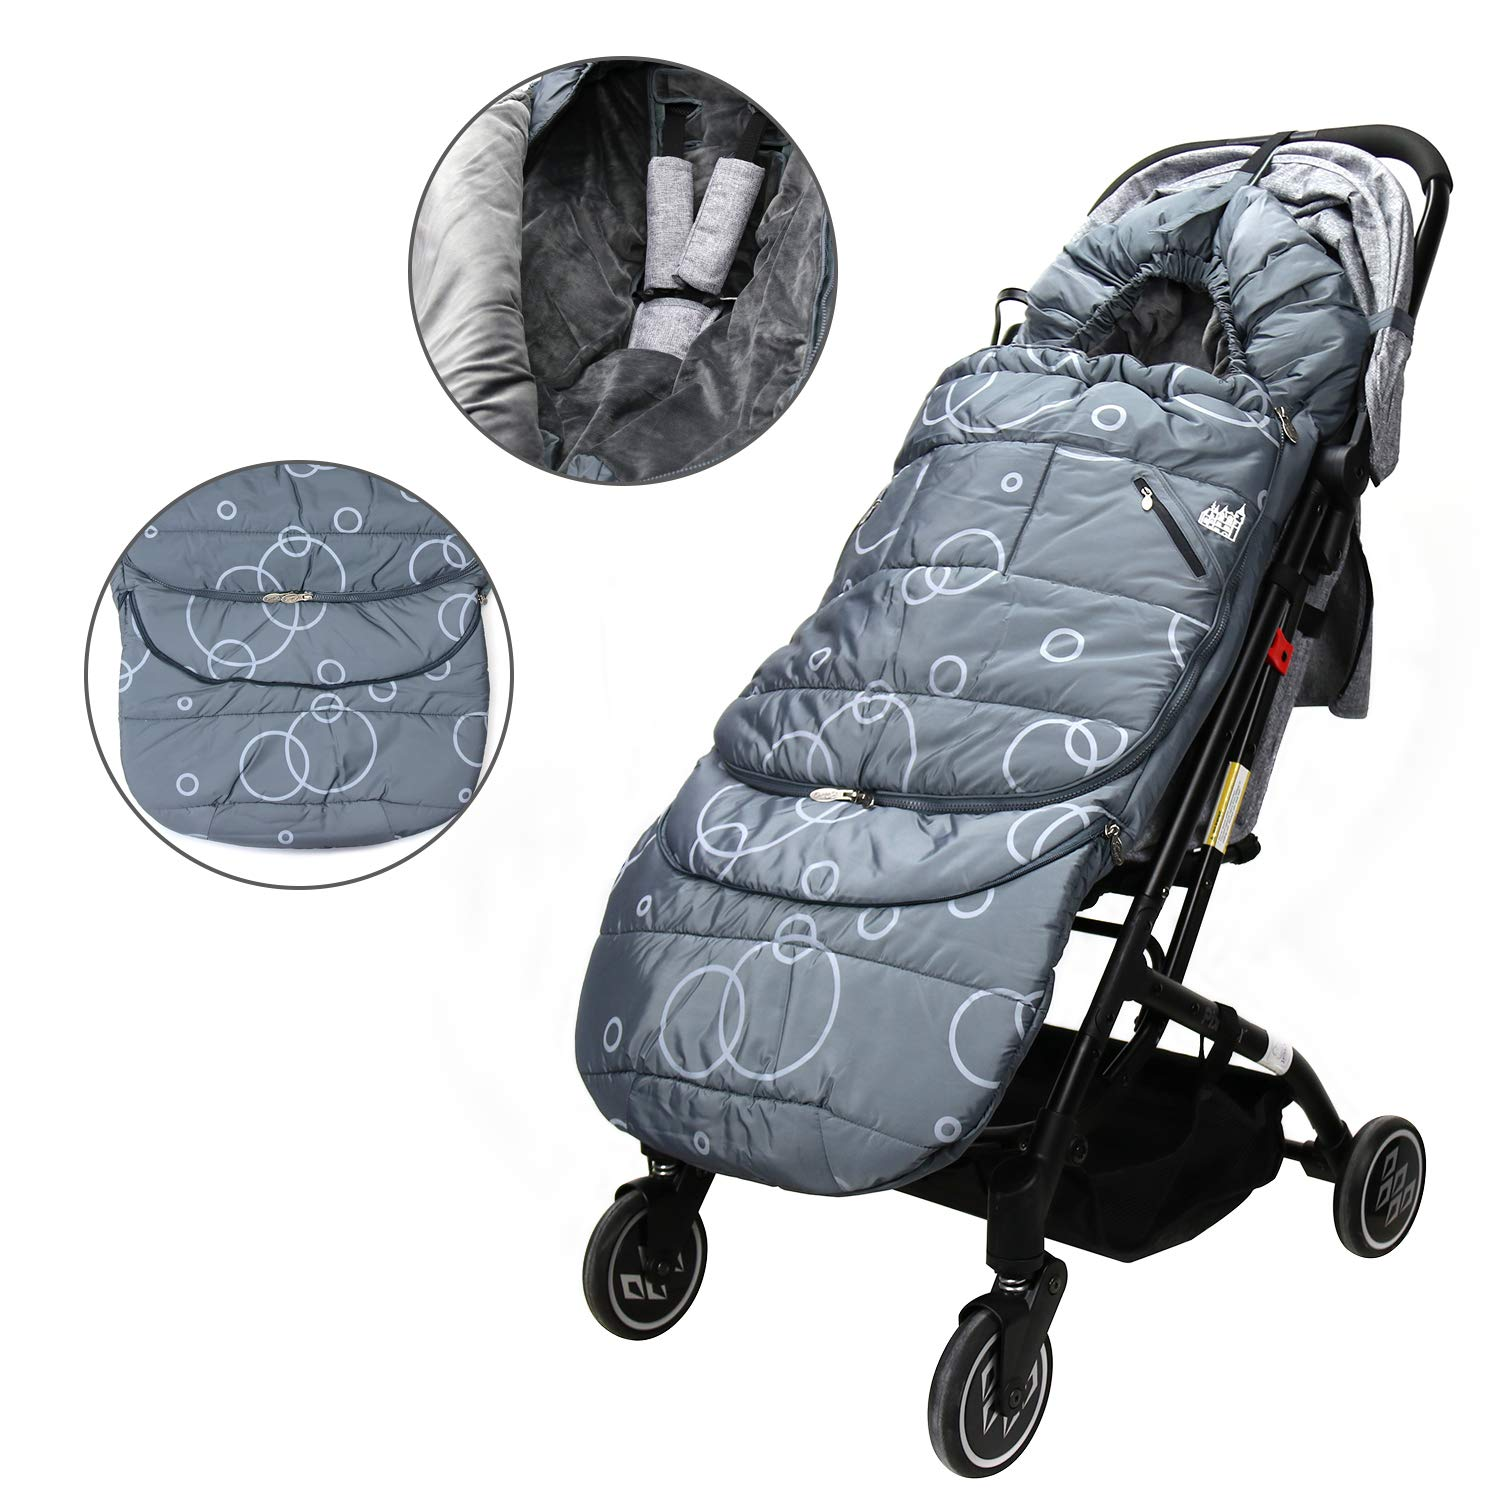 Wonder buggy Winter Outdoor Tour Waterproof Baby Infant Stroller Sleeping Bag Warm Footmuff Sack with Plush Interior (Gray) by Wonder buggy (Image #1)